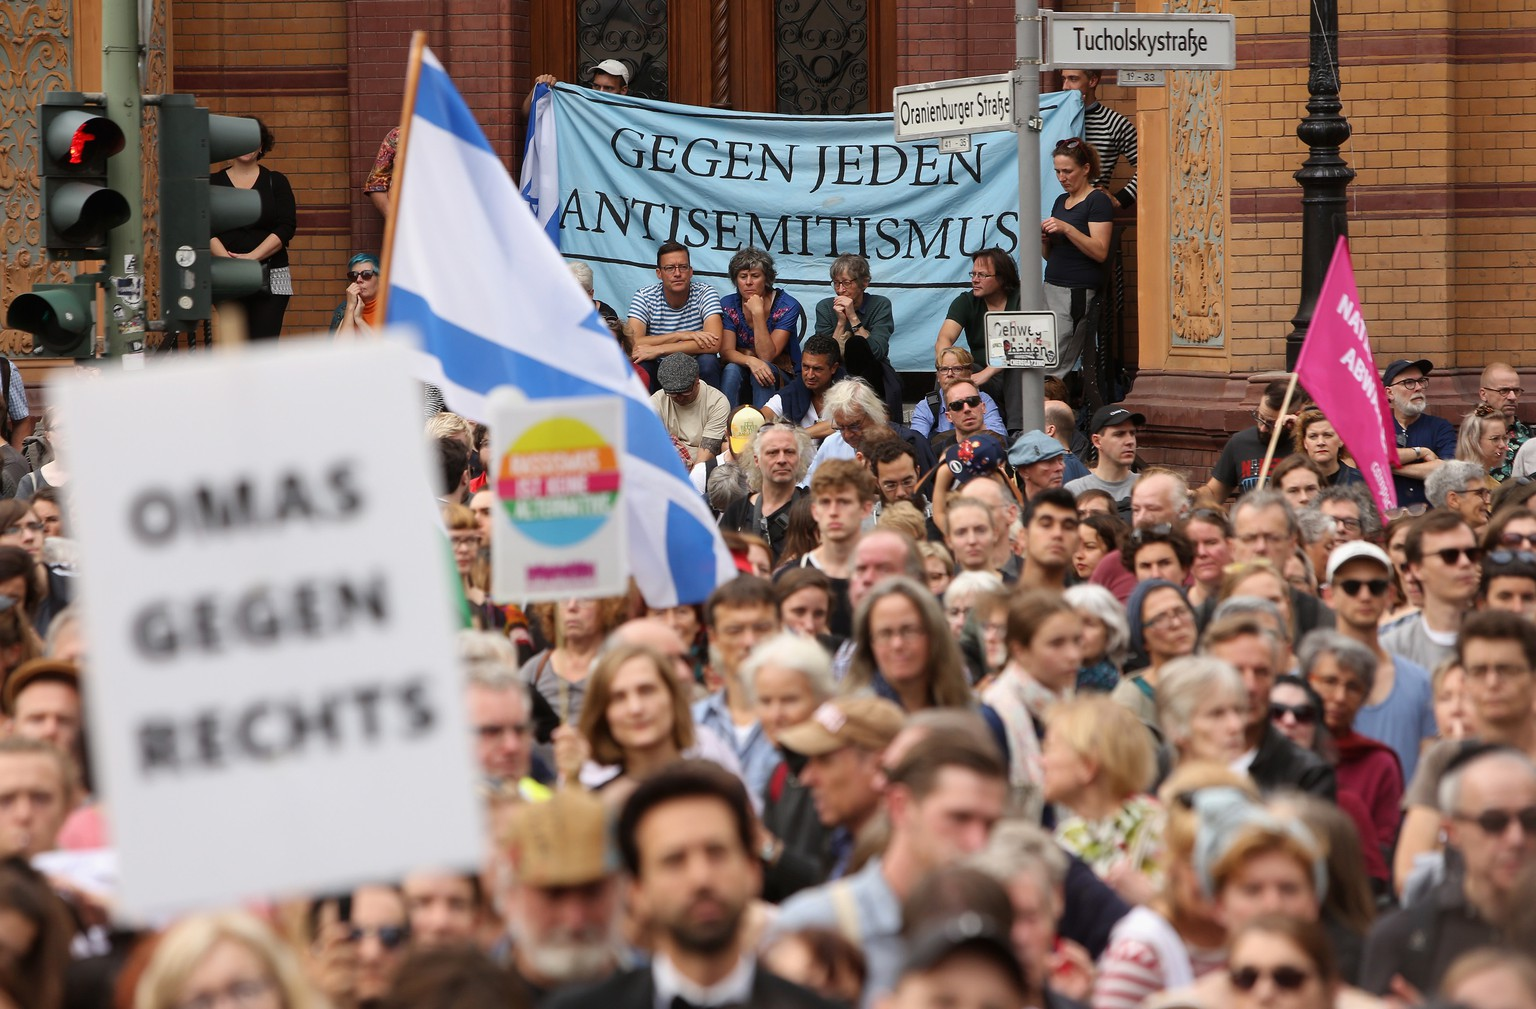 epa07917946 Protesters attend a demonstration against antisemitism and racism held outside the Neue Synagoge, or New Synagogue (unseen), in Berlin, Germany, 13 October 2019. Organized by the 'Unteilbar' solidarity with minorities protests, the demonstration was held four days after a racist and antisemitic attack in the East German city of Halle killed two people.  EPA/ADAM BERRY